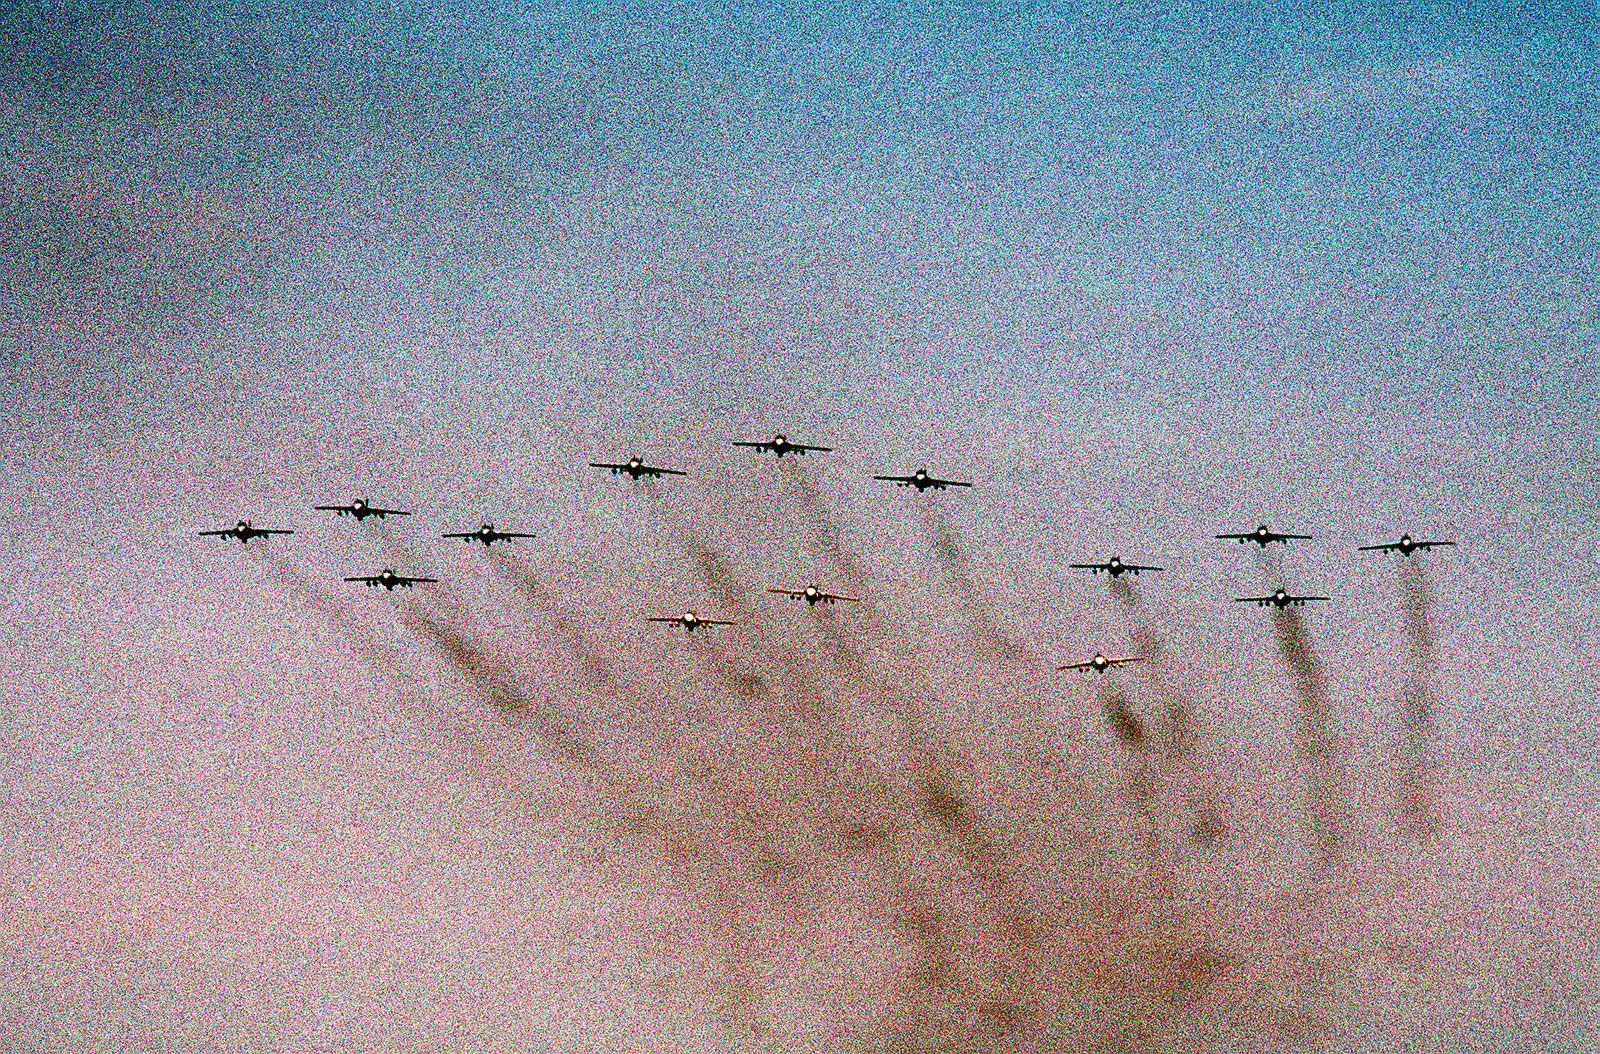 A-6E Intruder aircraft take part in a formation fly over upon their return from deployment in the Persian Gulf during Operation Desert Storm. Returning aircraft are from Carrier Air Wing 17 (CVW-17) and Carrier Air Wing 3 (CVW-3)